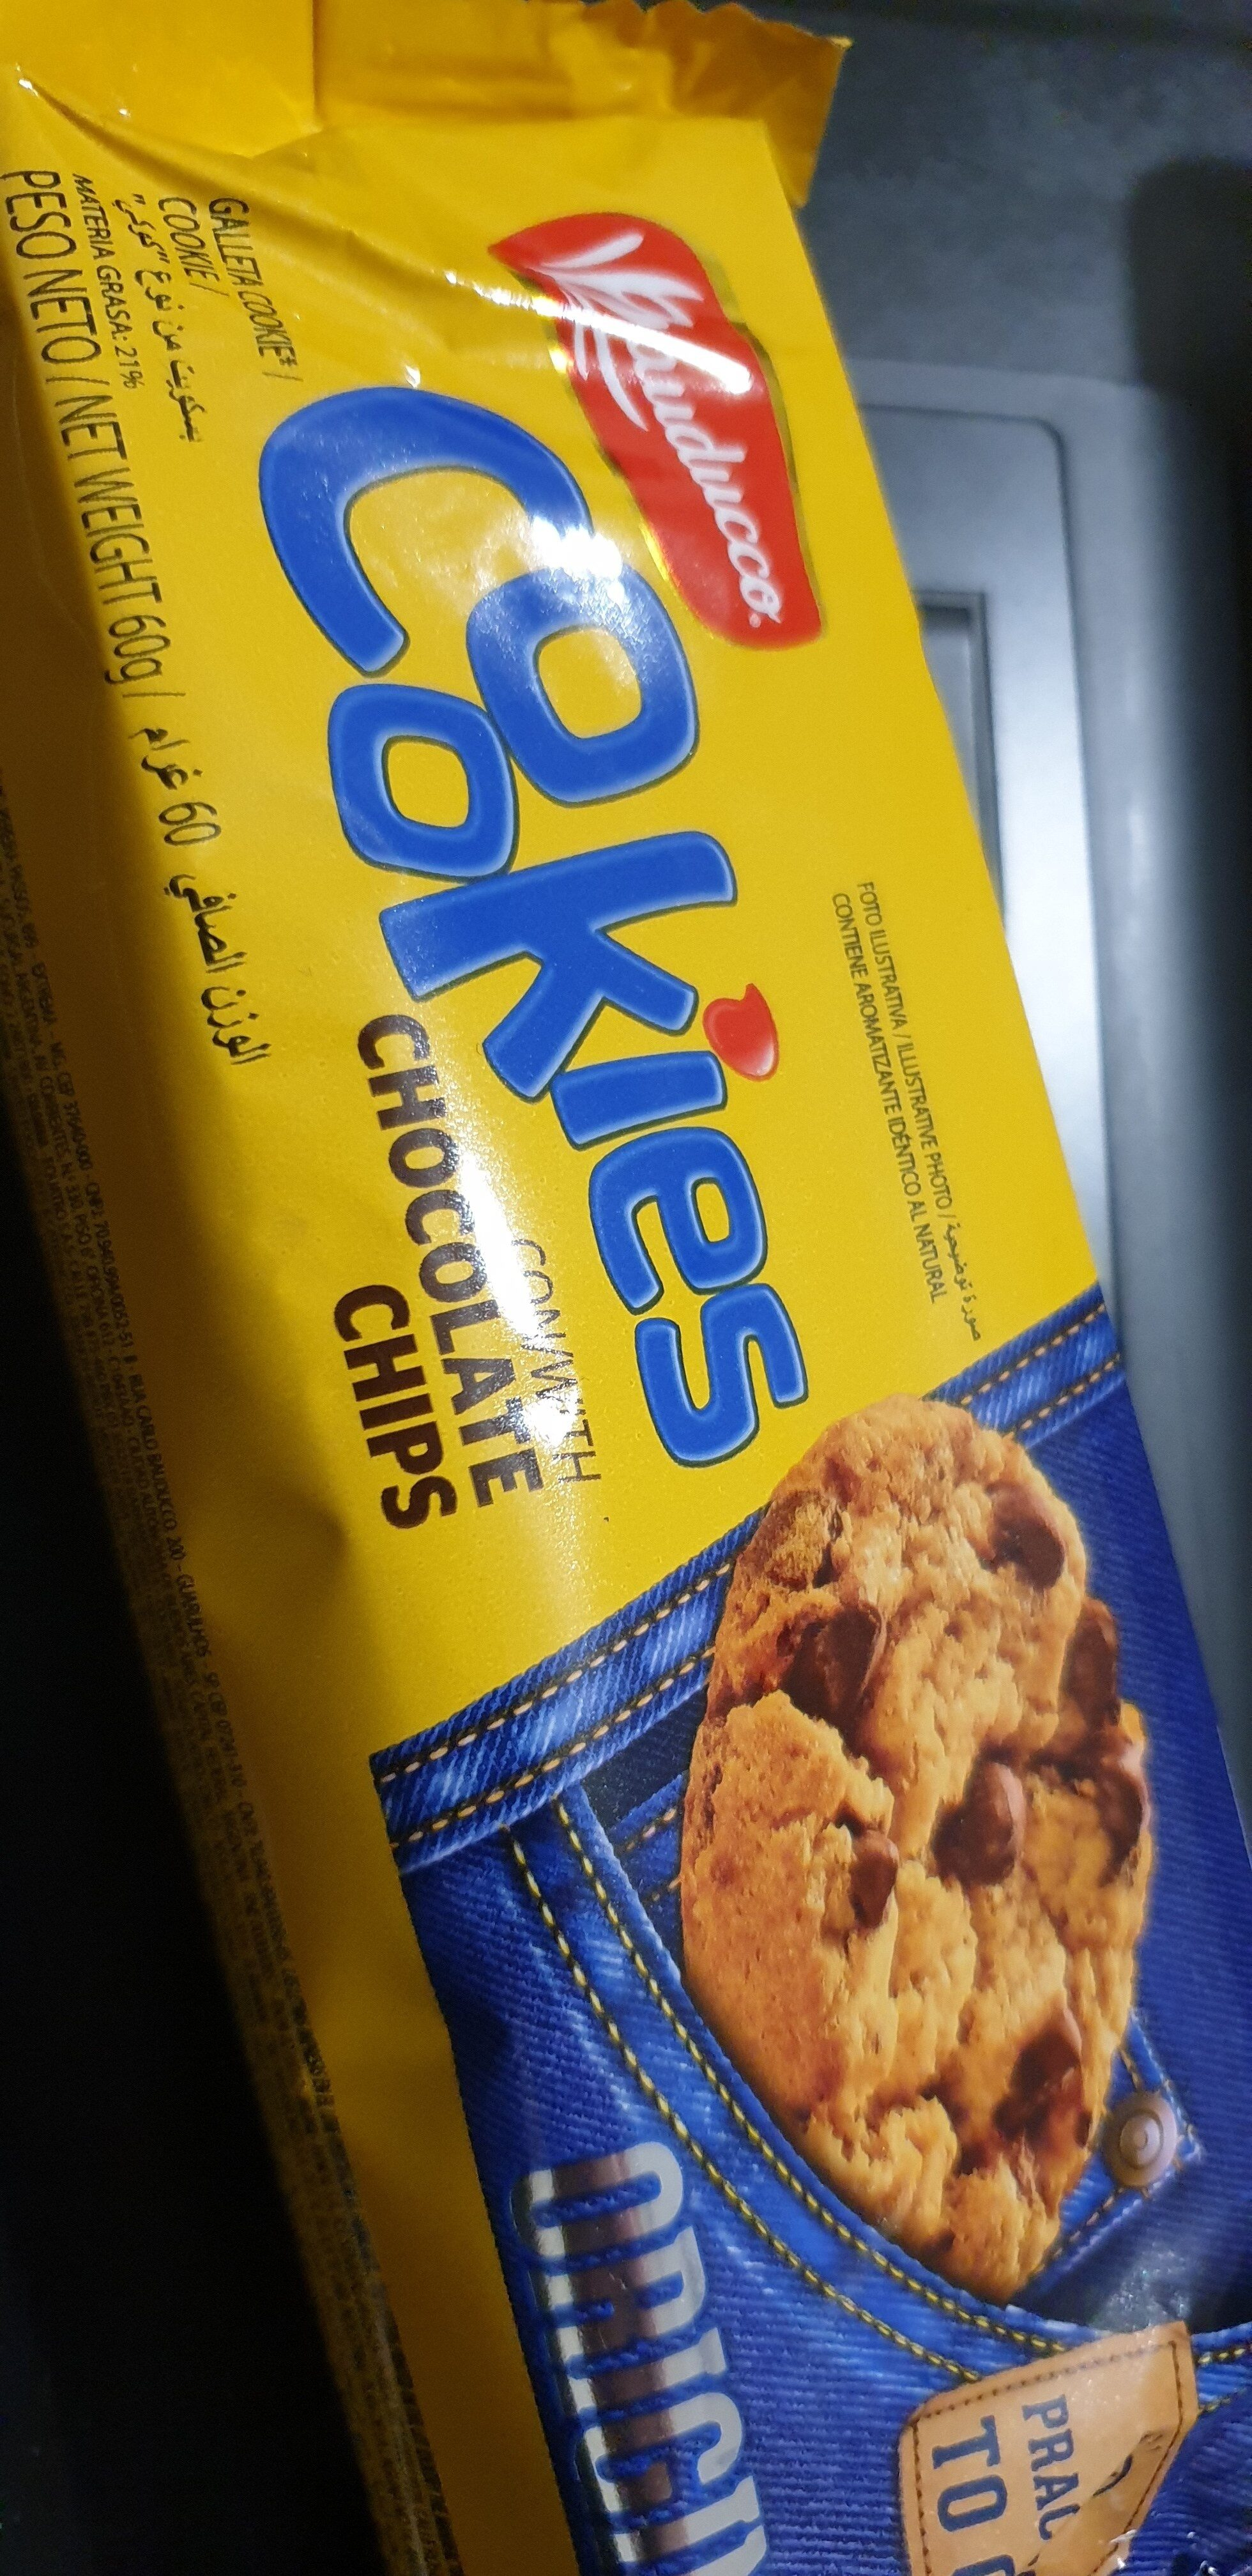 Bauducco Cookies with Chocolate Chips - Product - en